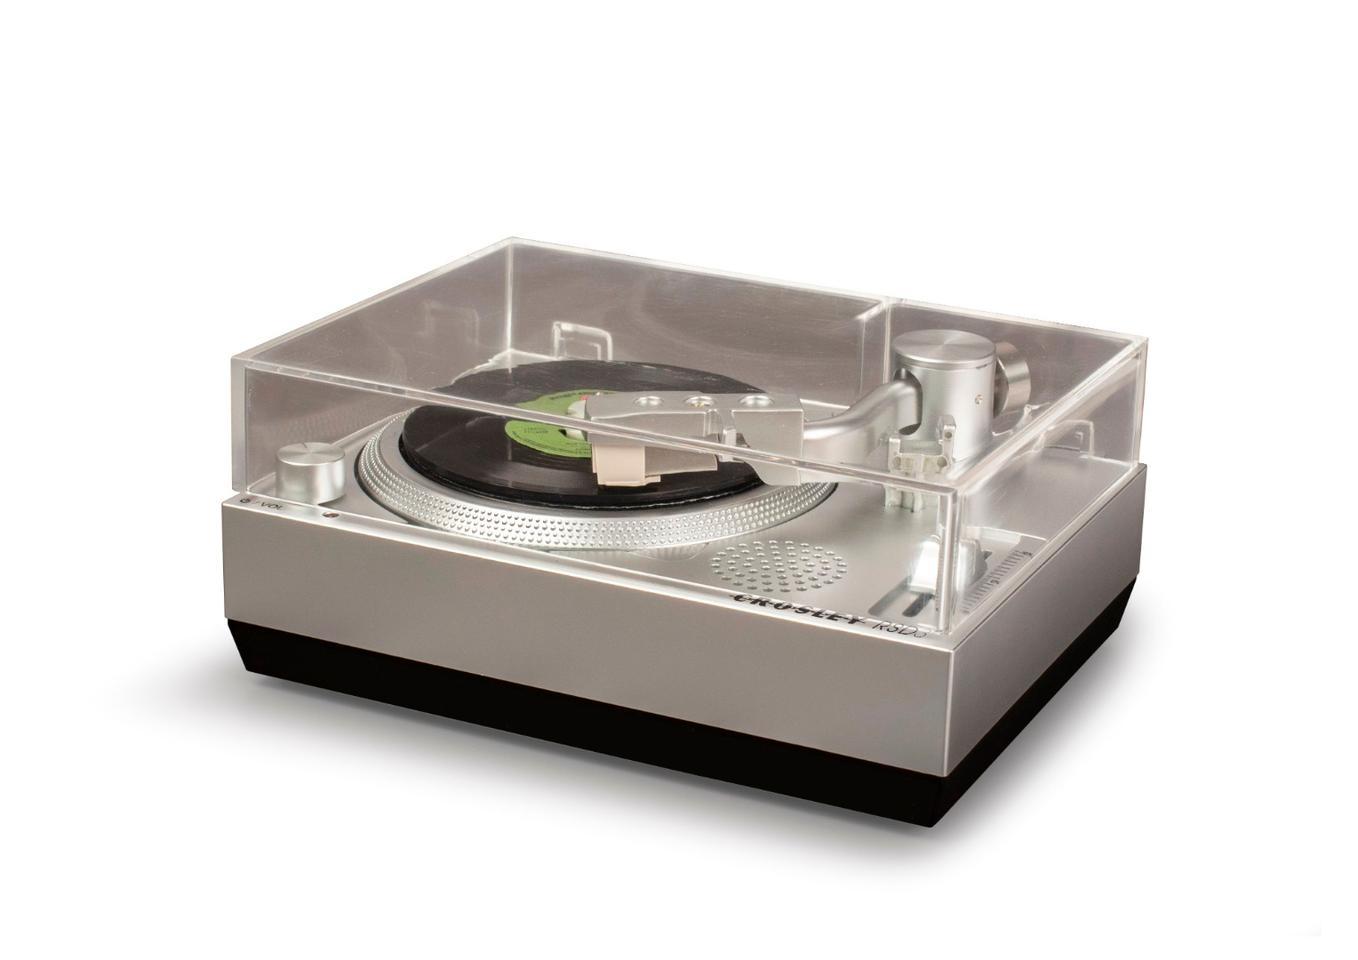 The Crosley Radio RSD3 turntable kind of looks like the newborn offspring of a Technics SL-1200